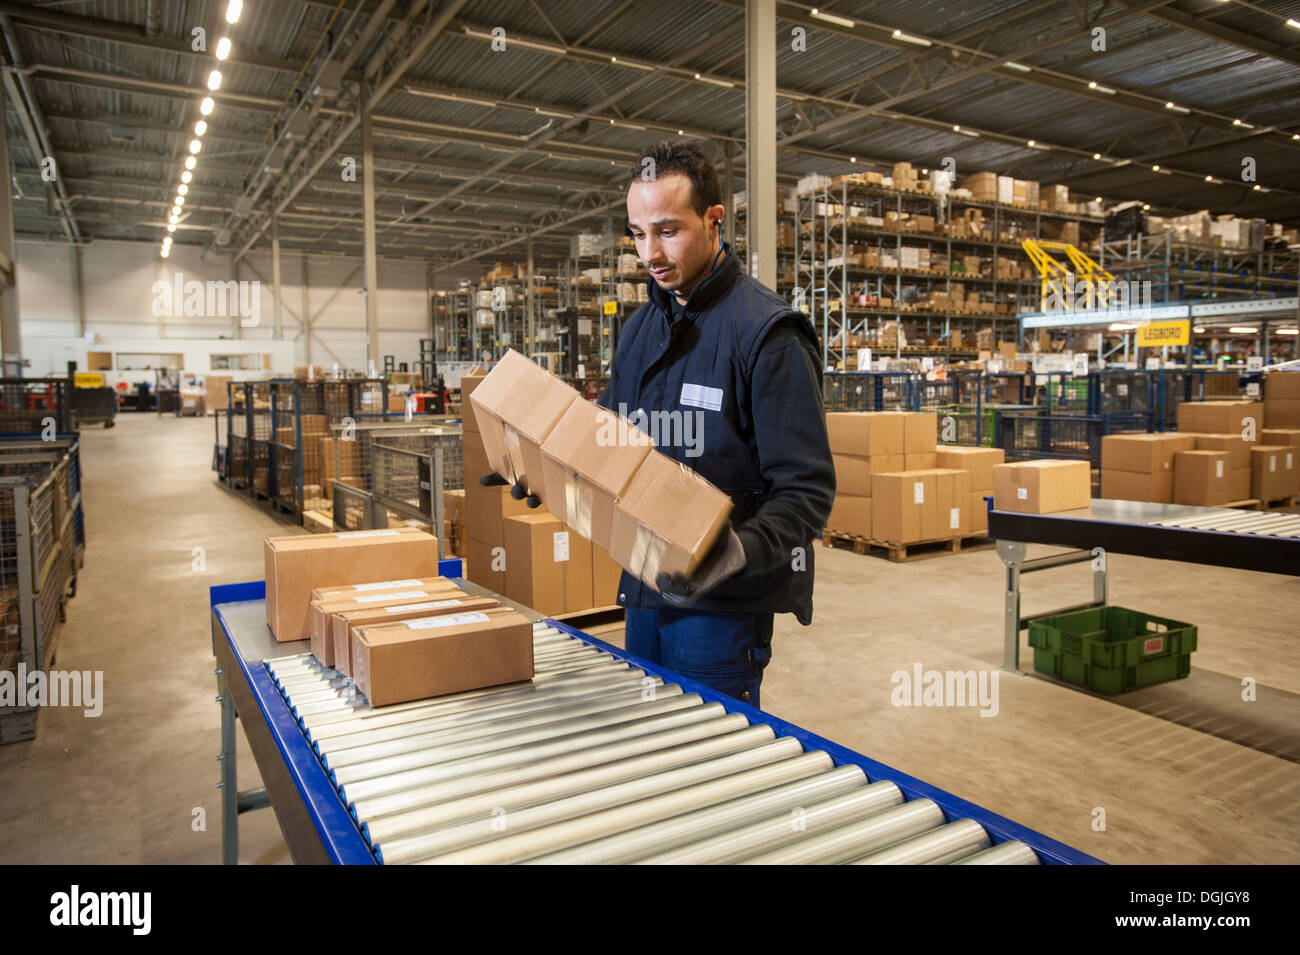 Male warehouse worker selecting cardboard boxes from conveyor belt male warehouse worker selecting cardboard boxes from conveyor belt sciox Choice Image